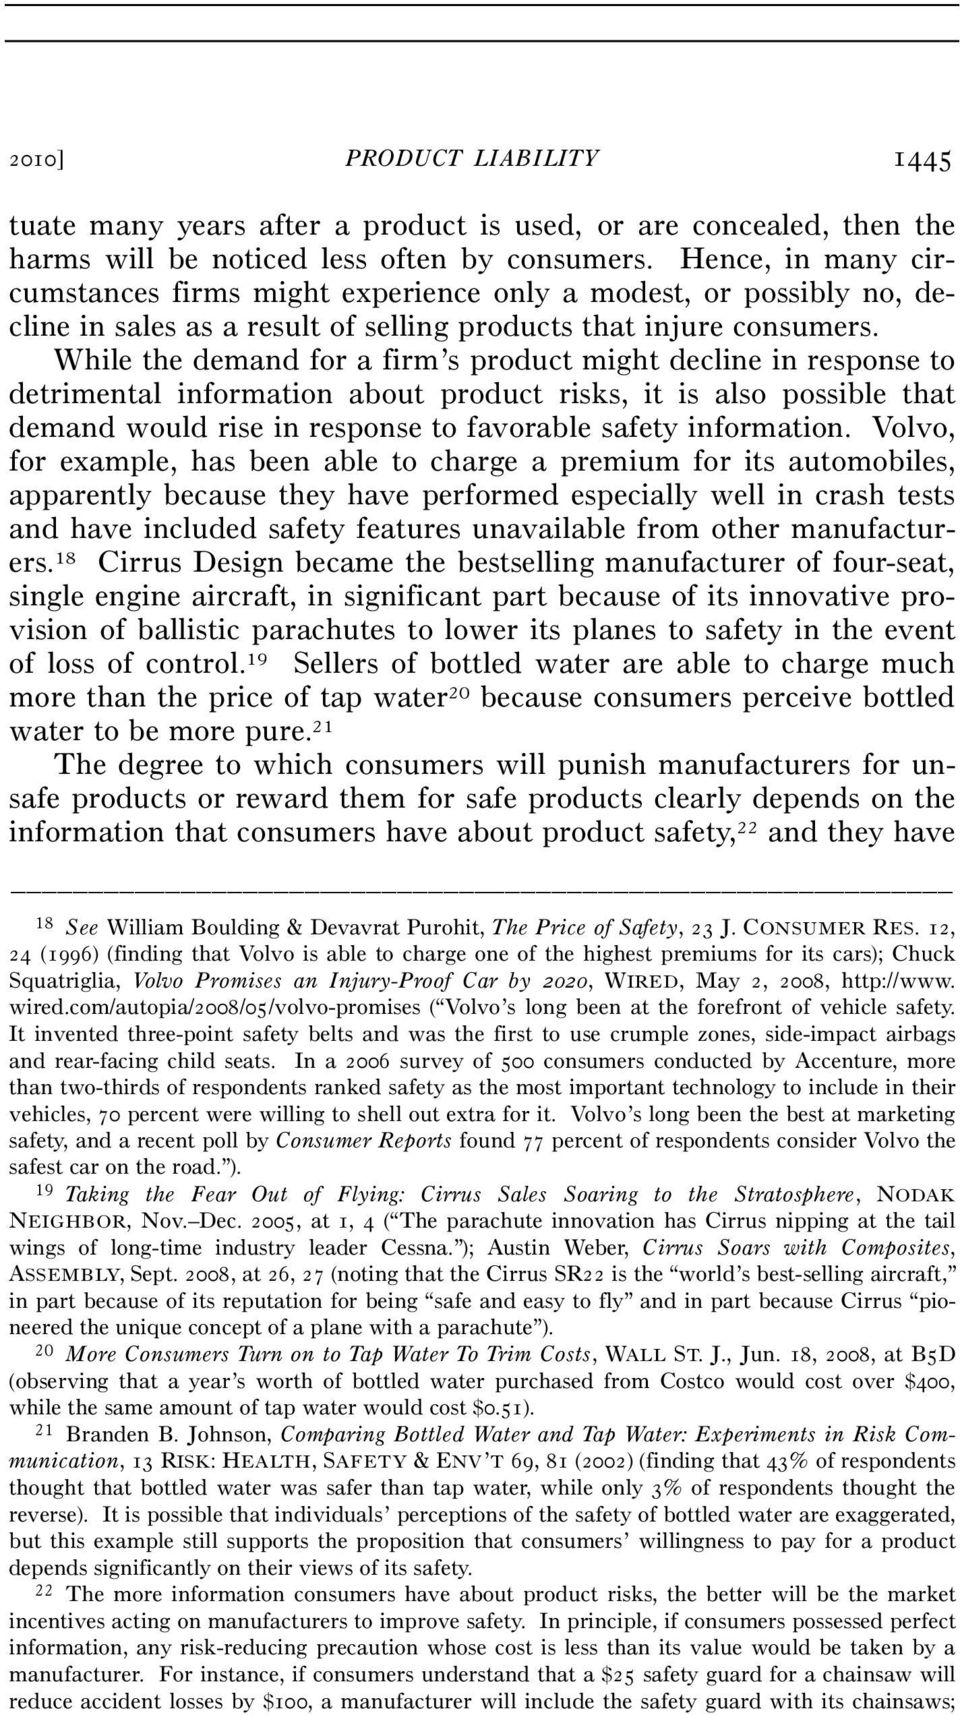 While the demand for a firm s product might decline in response to detrimental information about product risks, it is also possible that demand would rise in response to favorable safety information.